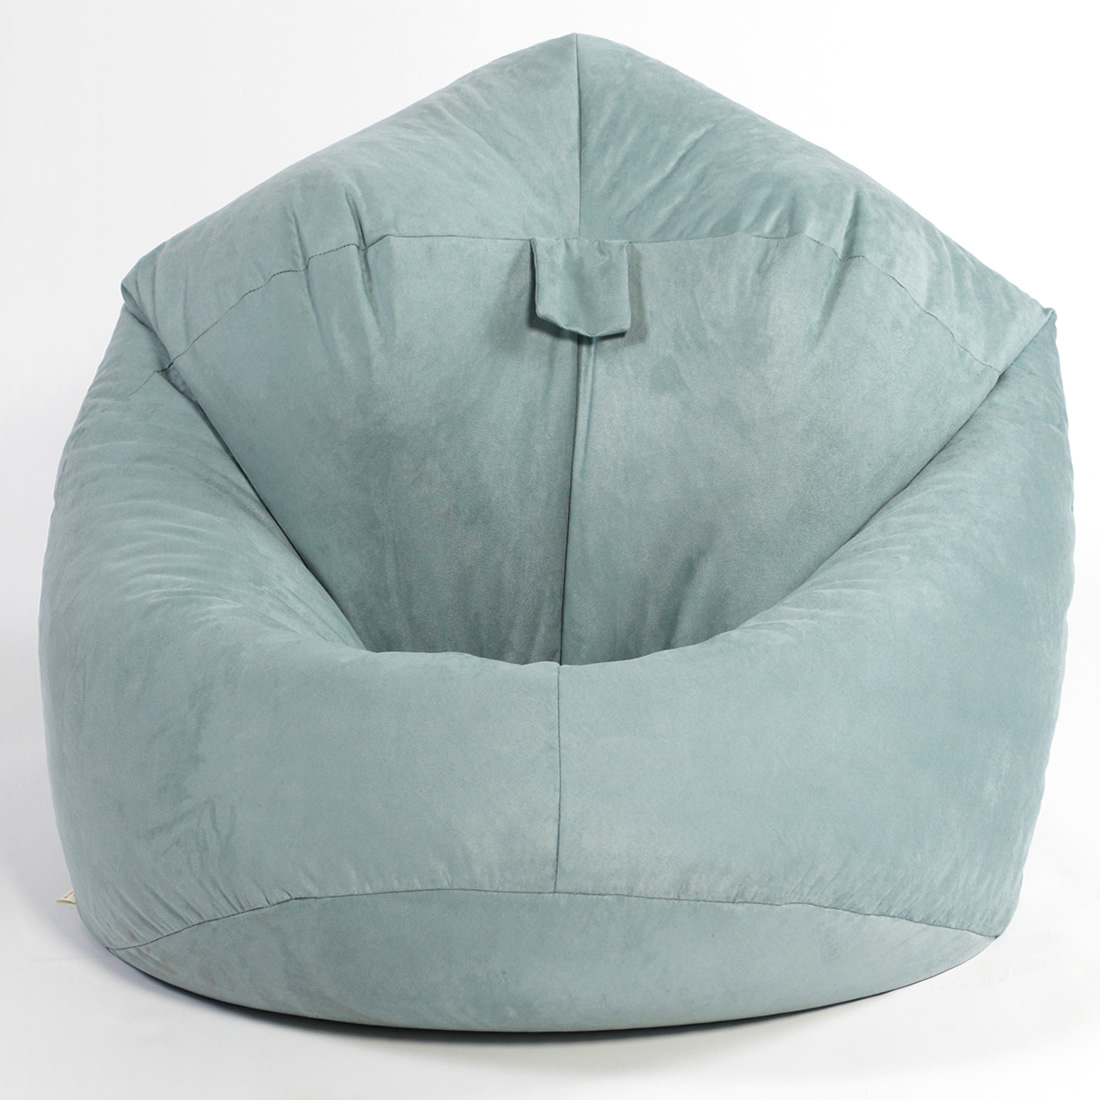 Groovy Adult Classic Faux Suede Beanbag Squirreltailoven Fun Painted Chair Ideas Images Squirreltailovenorg